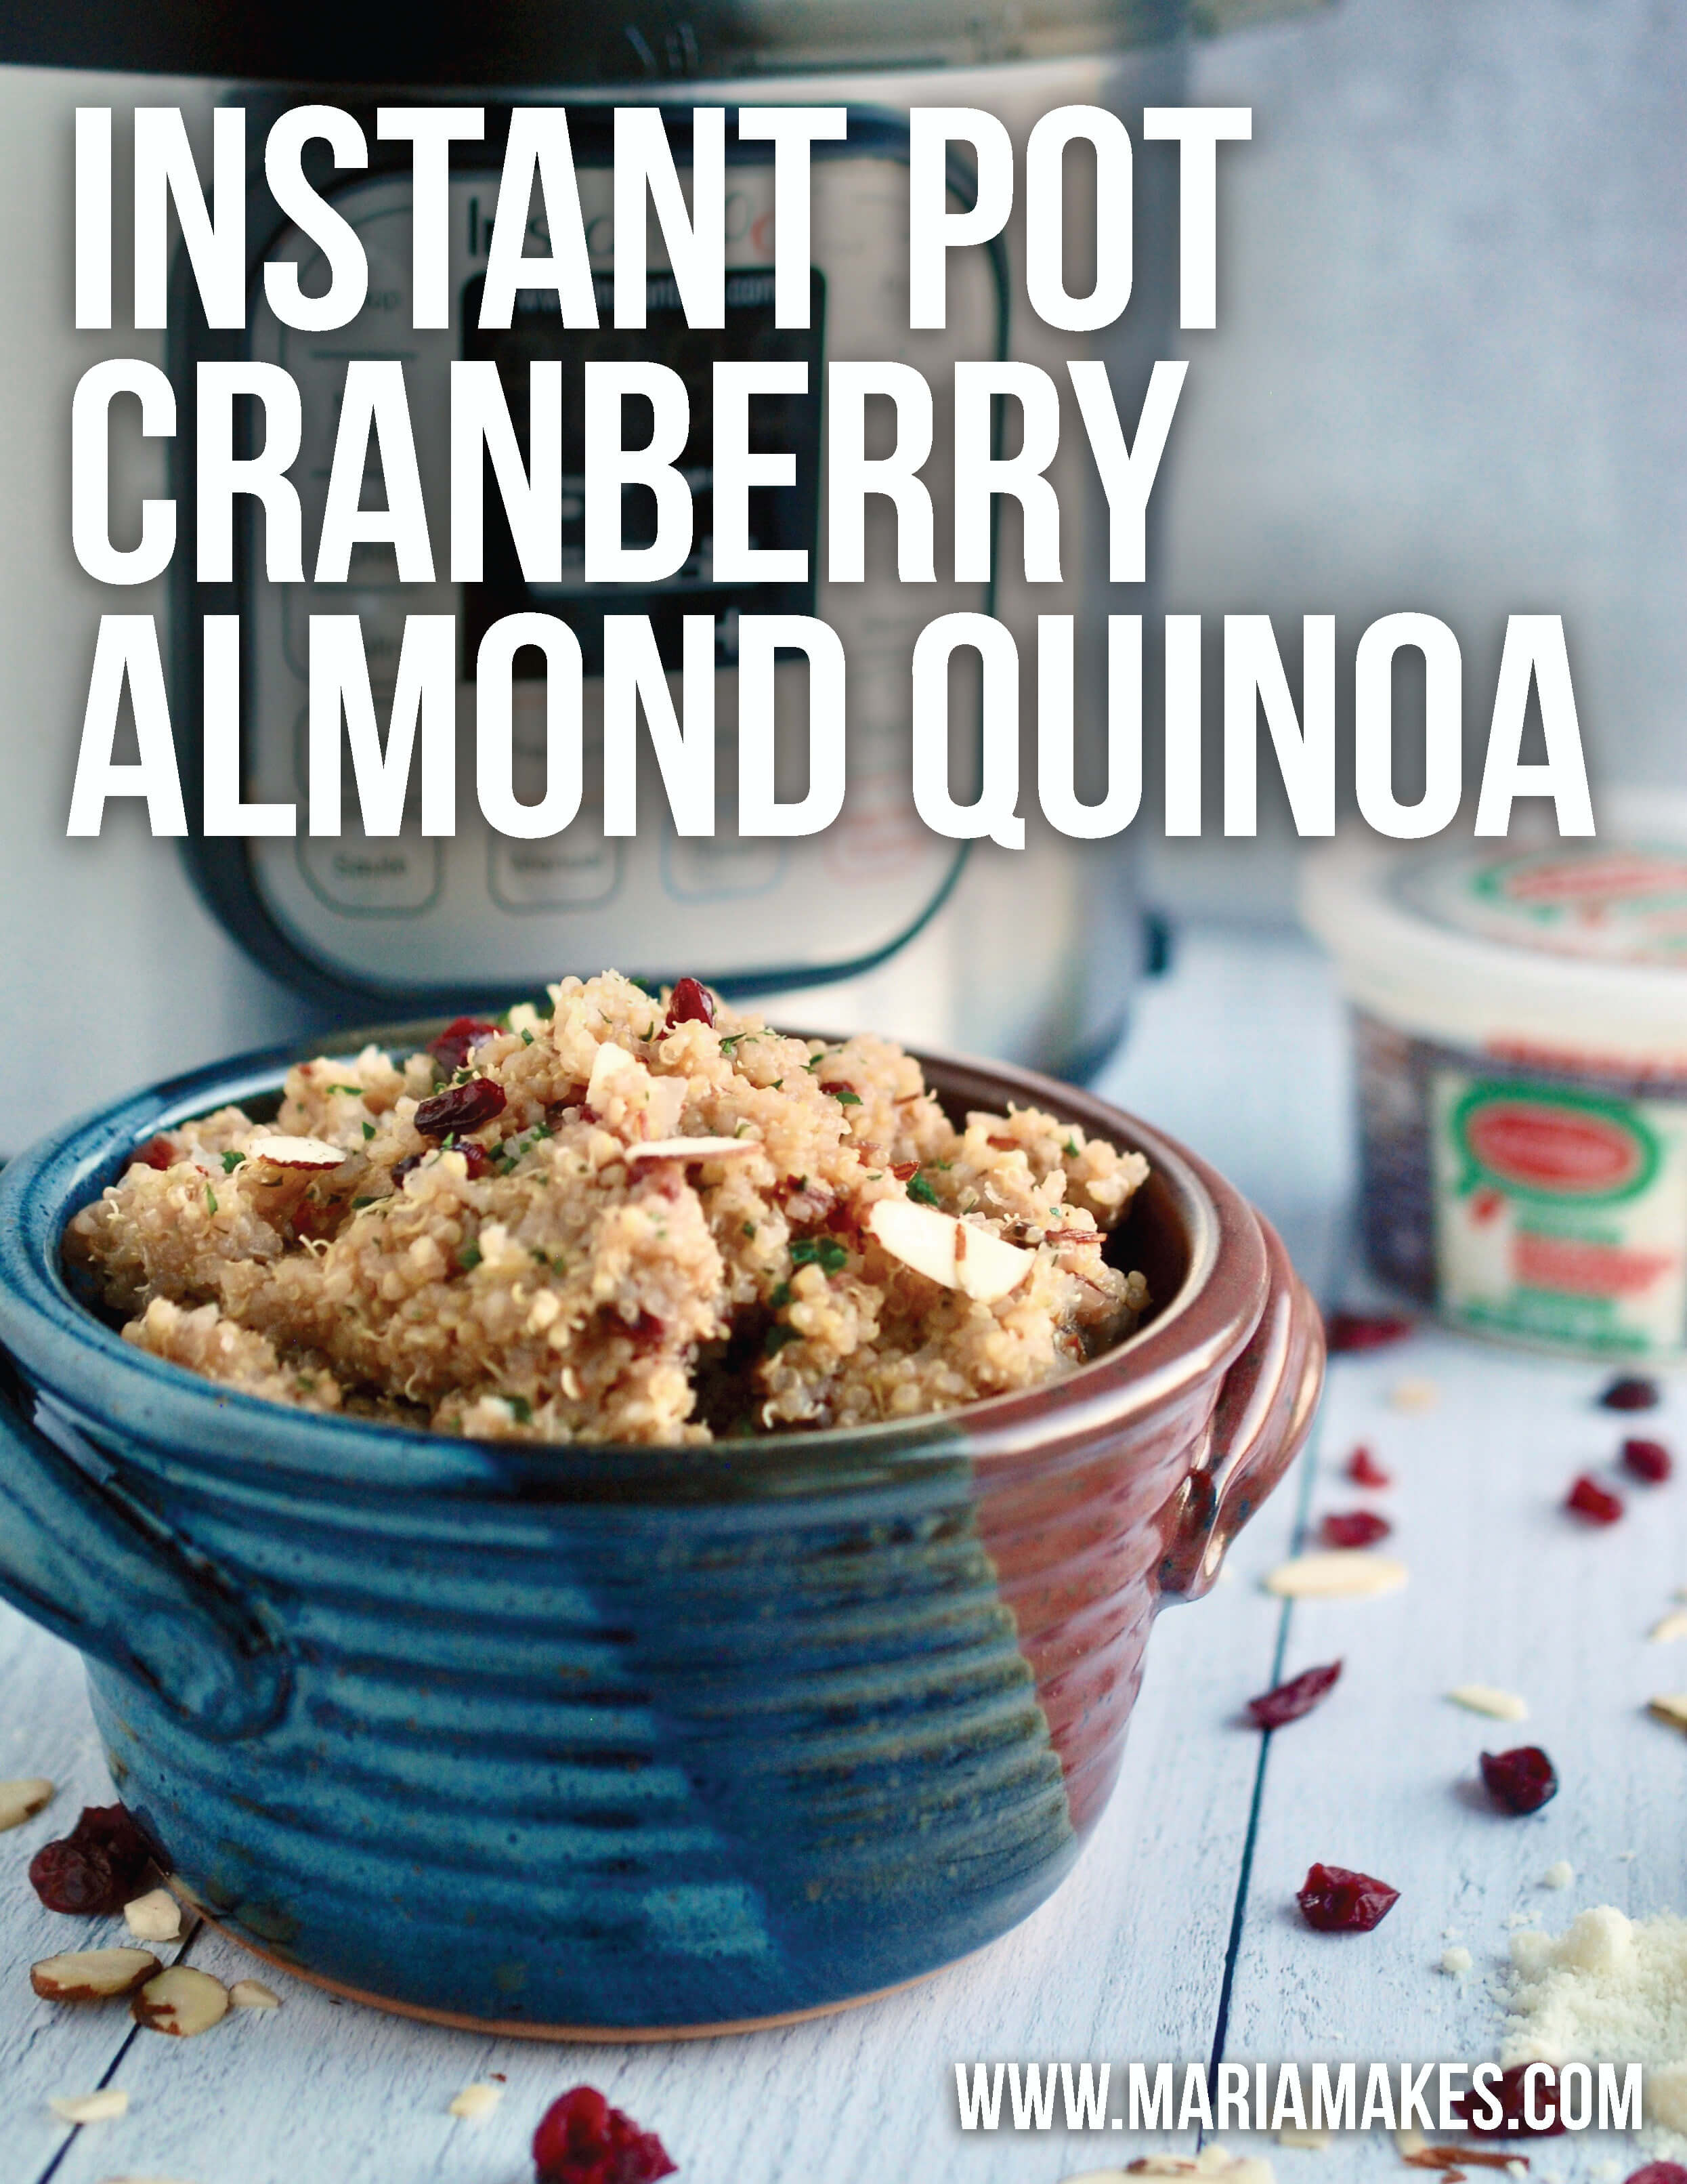 Instant Pot Cranberry Almond Quinoa – Maria Makes: This quinoa is the perfect side dish for, well, anything really. I especially love it alongside salmon or grilled chicken! Don't skip the toasted almonds as they really make the dish!